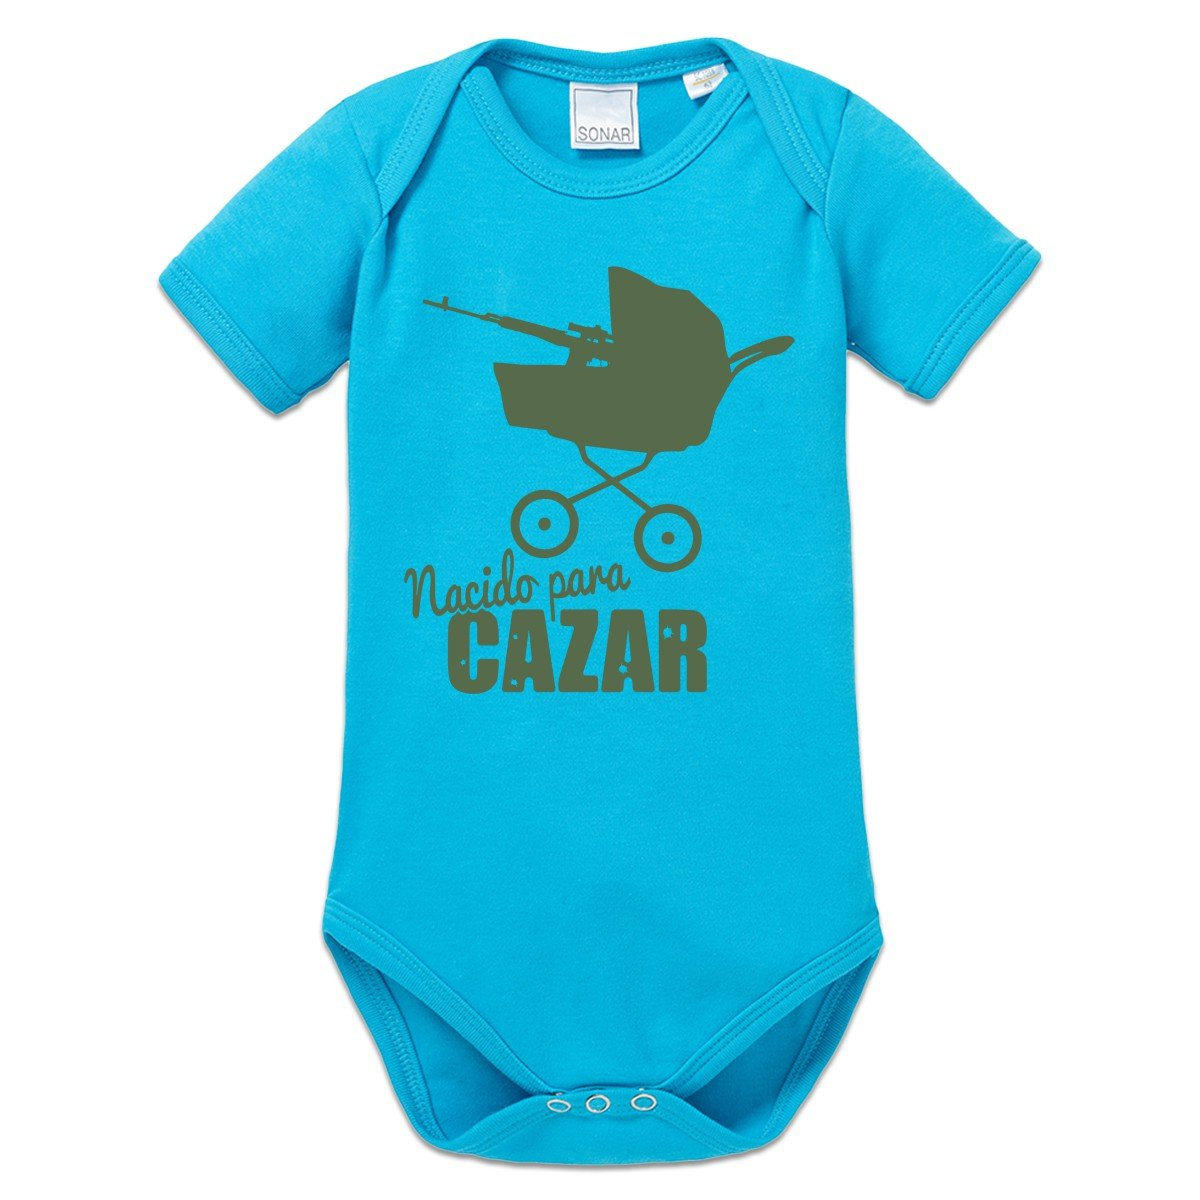 Body bebé Nacido para cazar by Shirtcity: Amazon.es: Ropa y ...